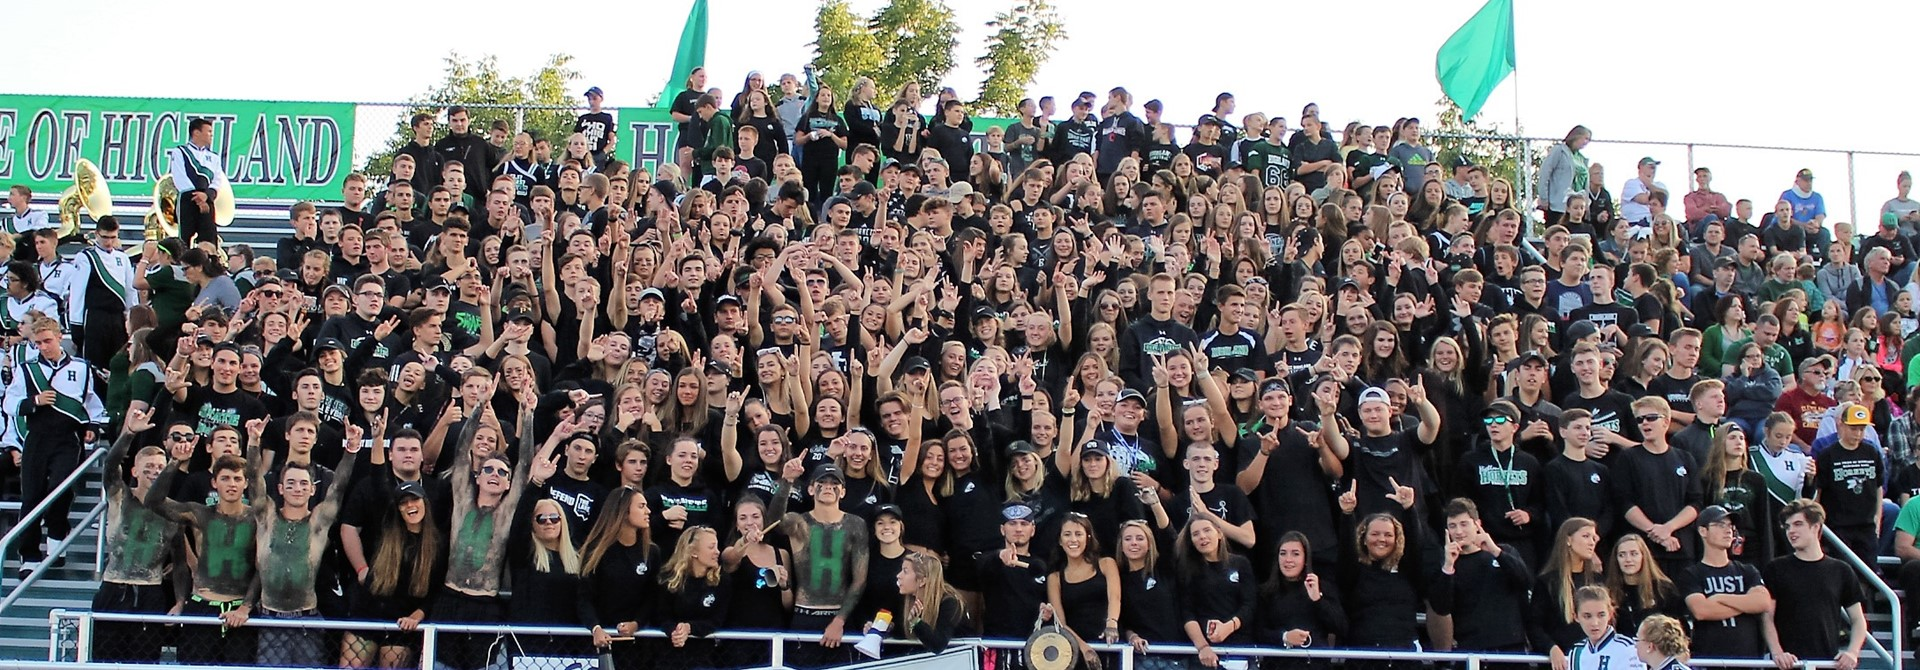 Photos of Student Crowd at Football Game